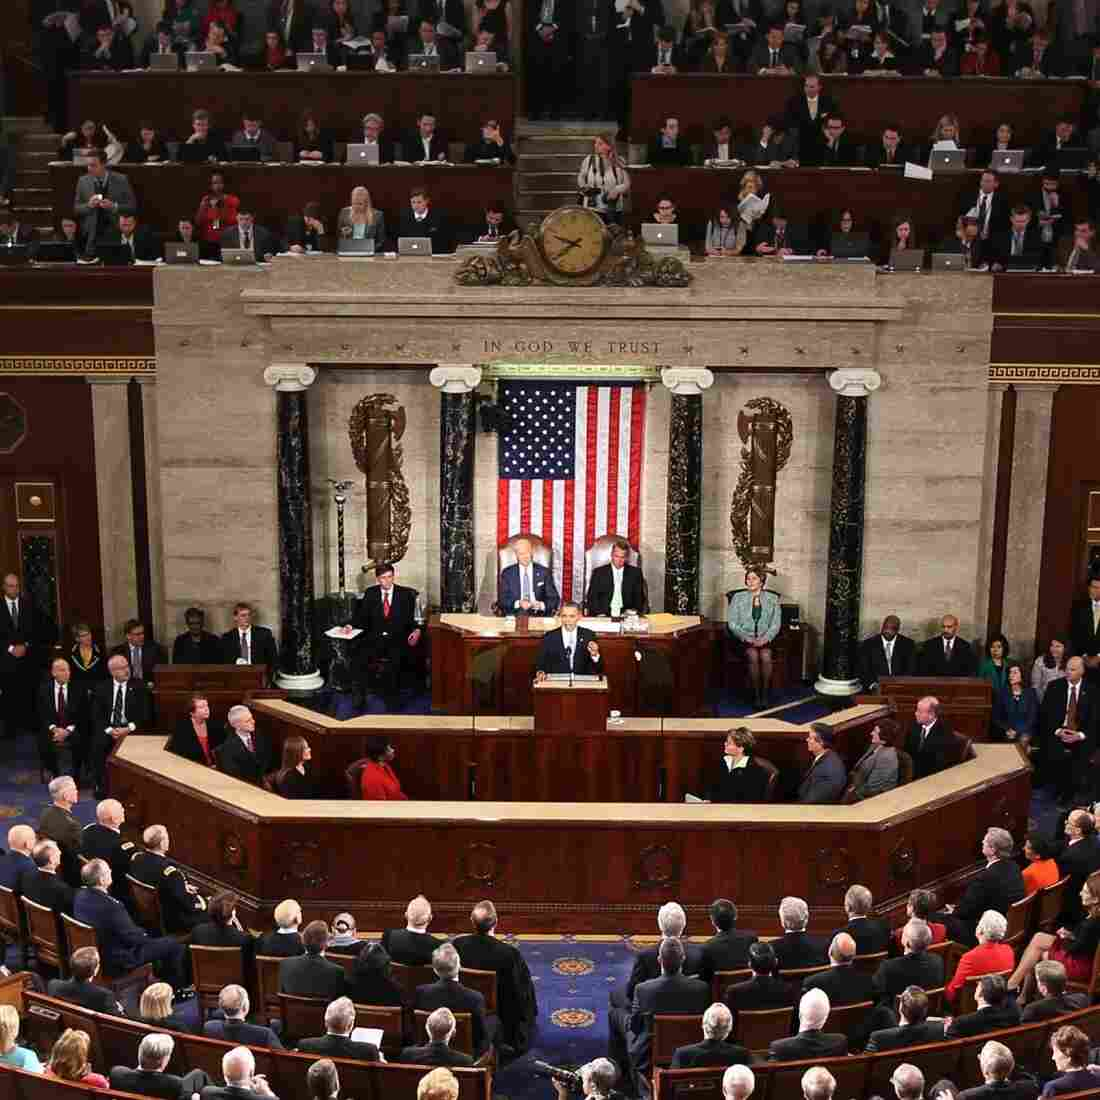 President Obama delivers his State of the Union address before a joint session of Congress on Tuesday.